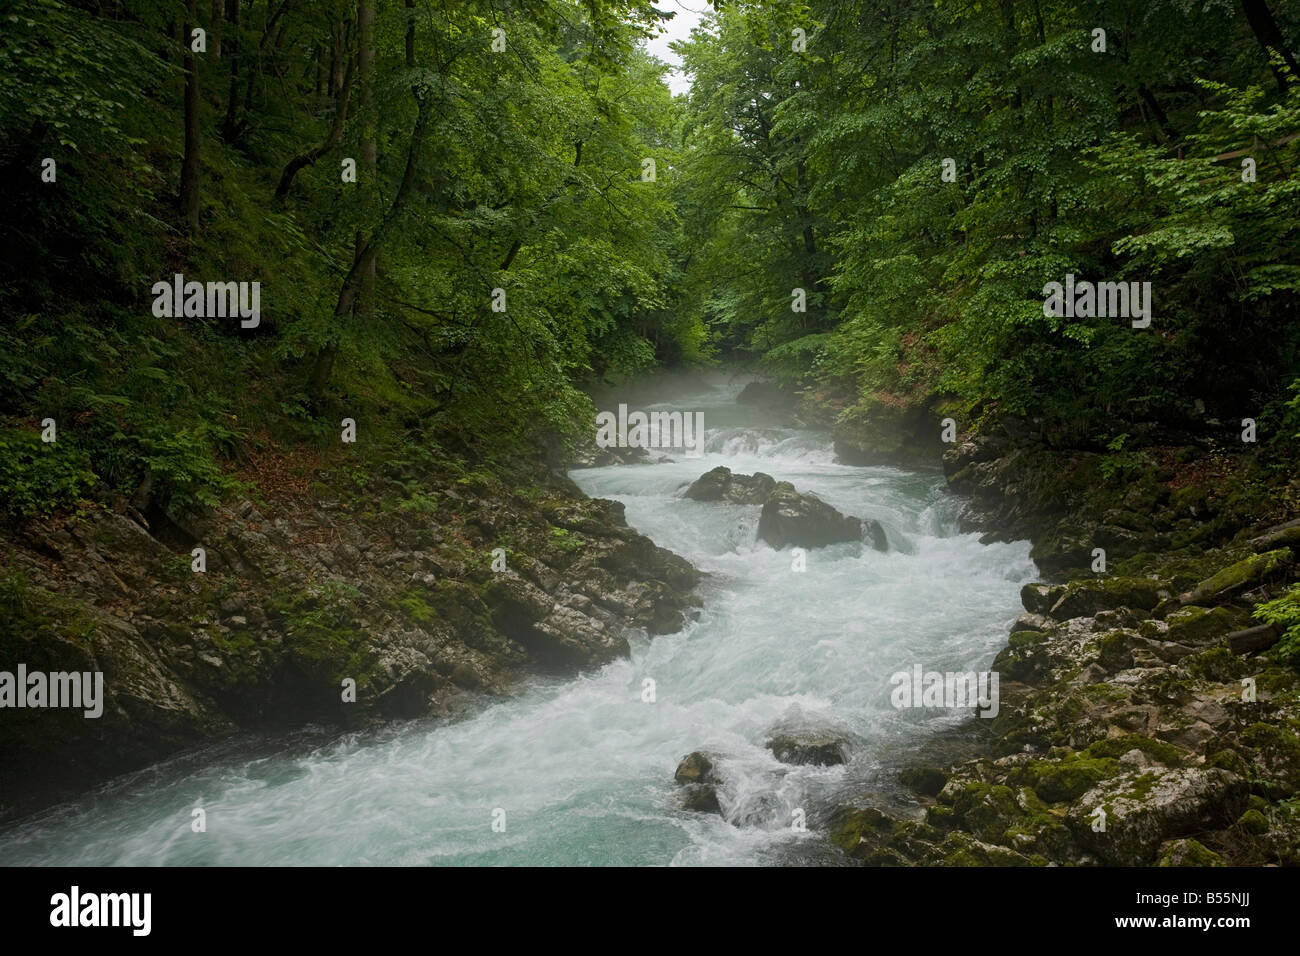 The Radovna river flowing through the Vintgar Gorge near Bled Triglav National Park Slovenia - Stock Image